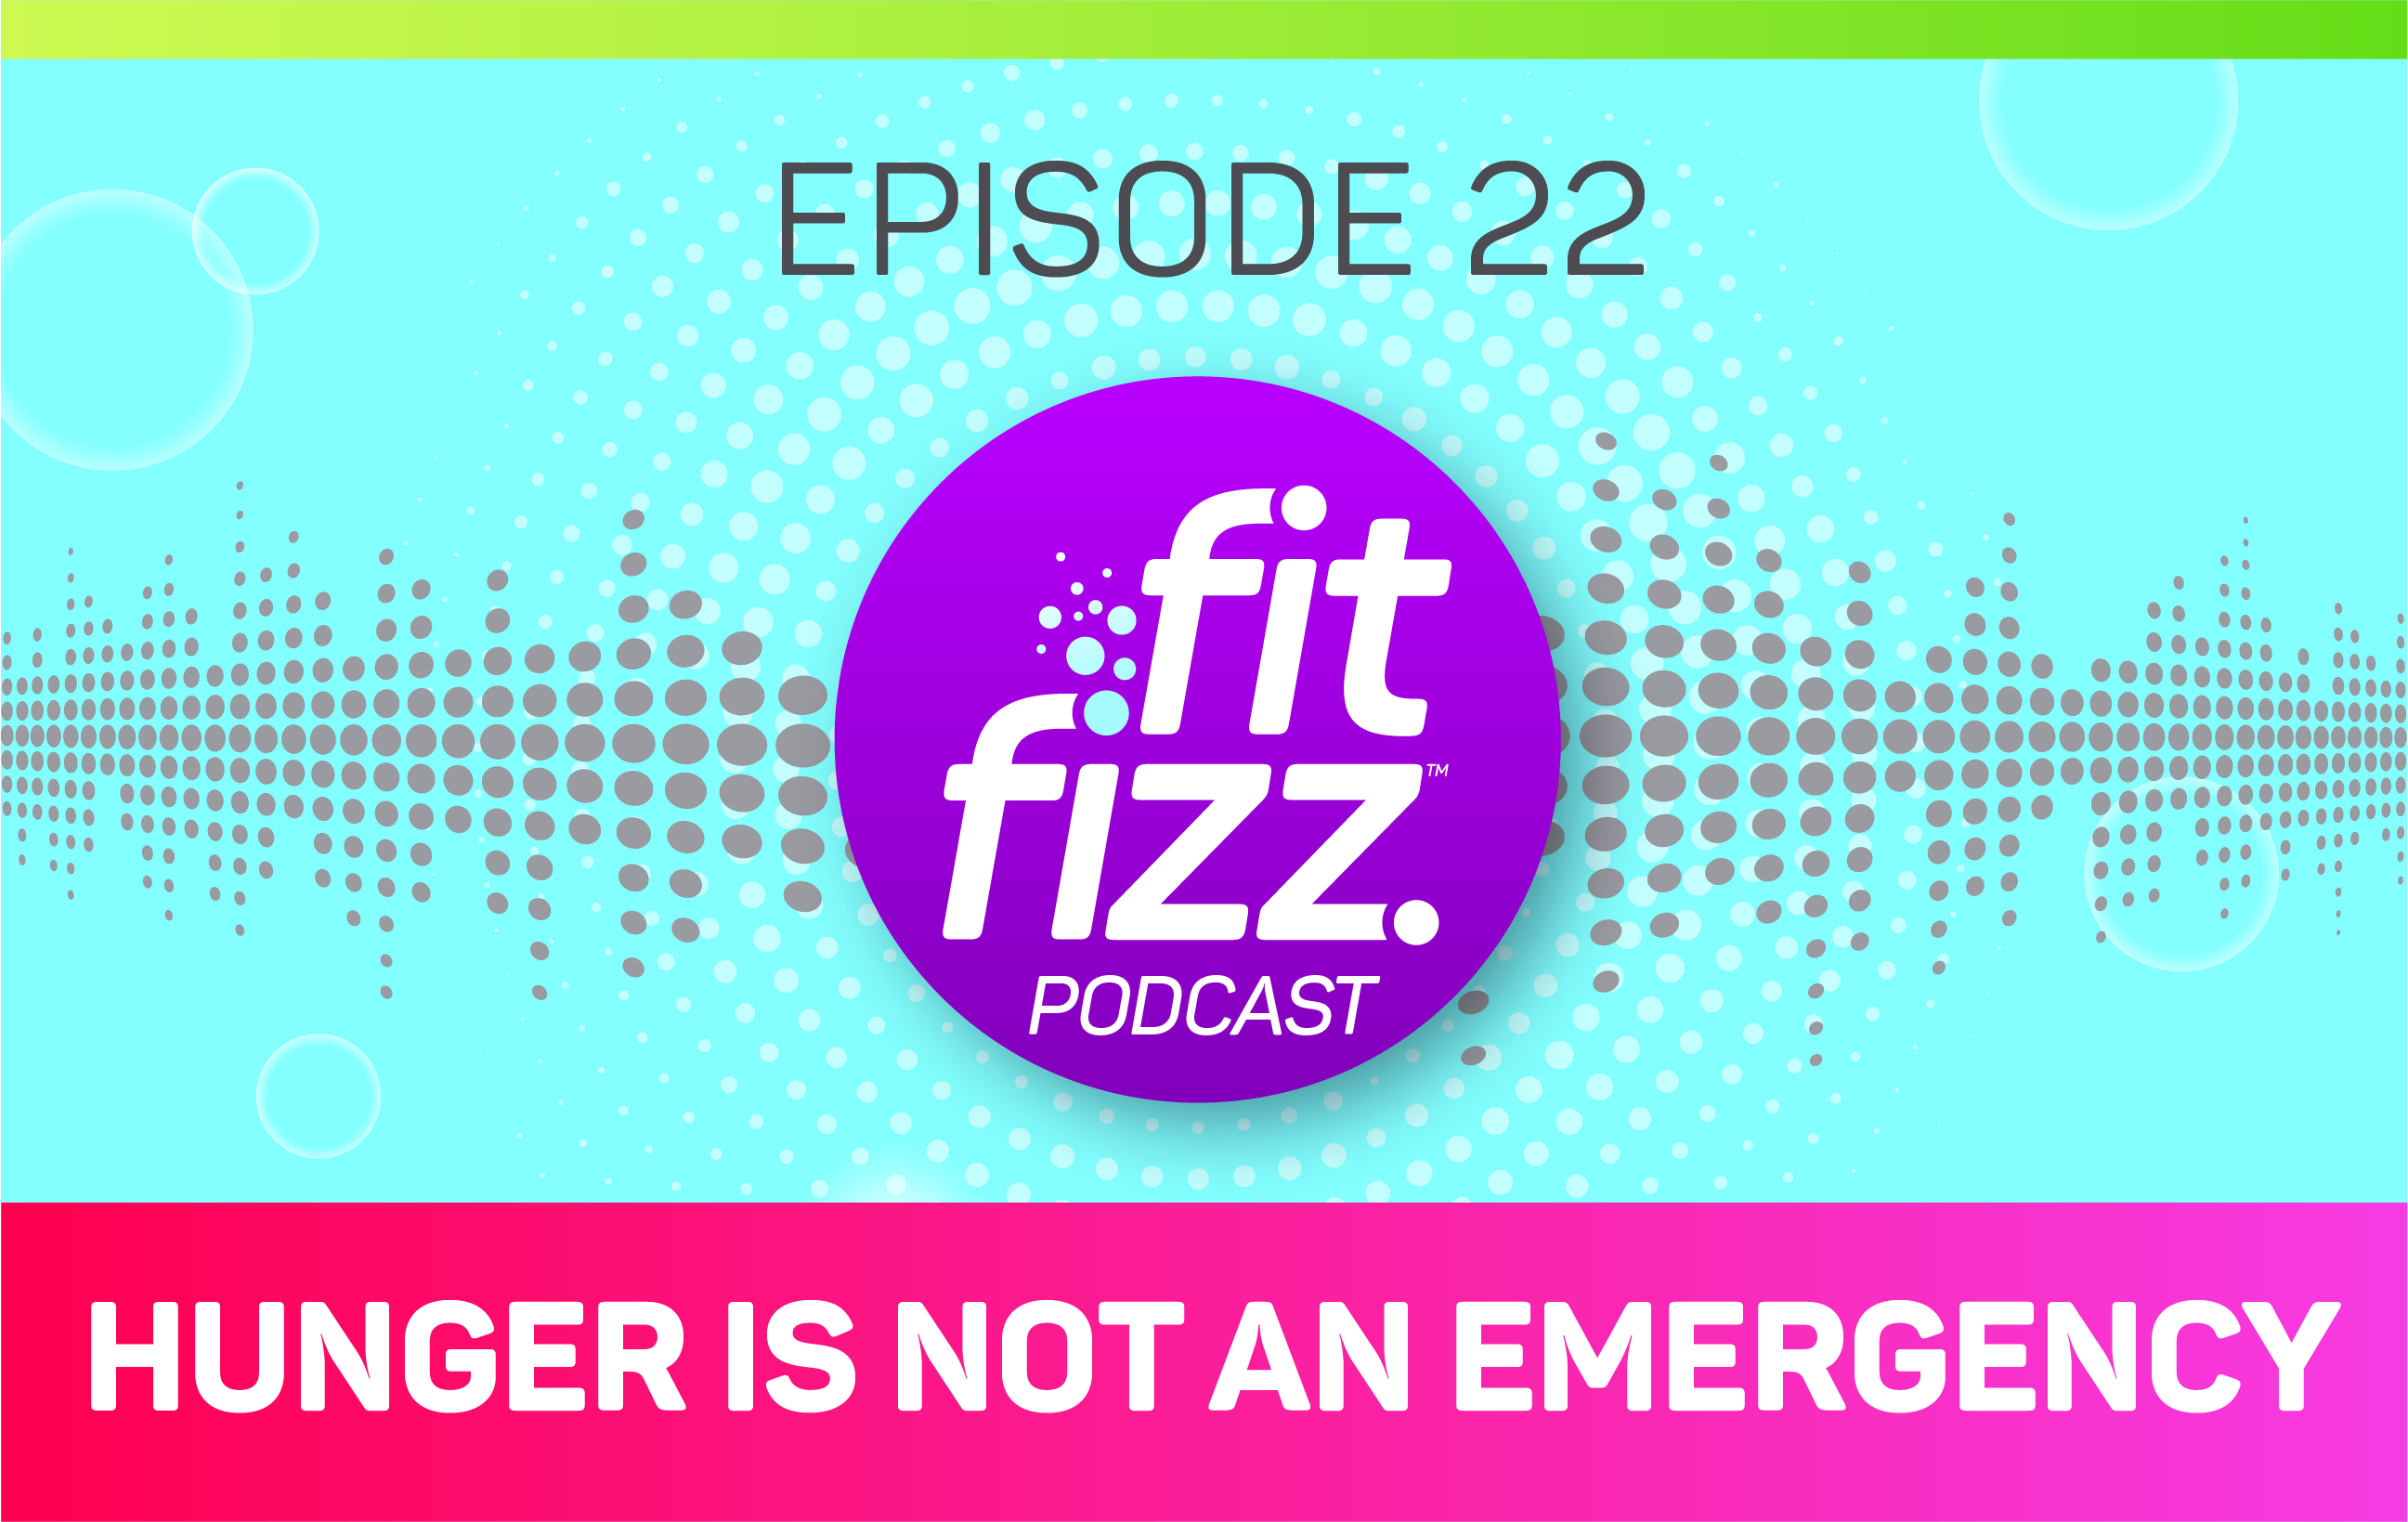 FitFizz Podcast Episode 22: Hunger is not an Emergency